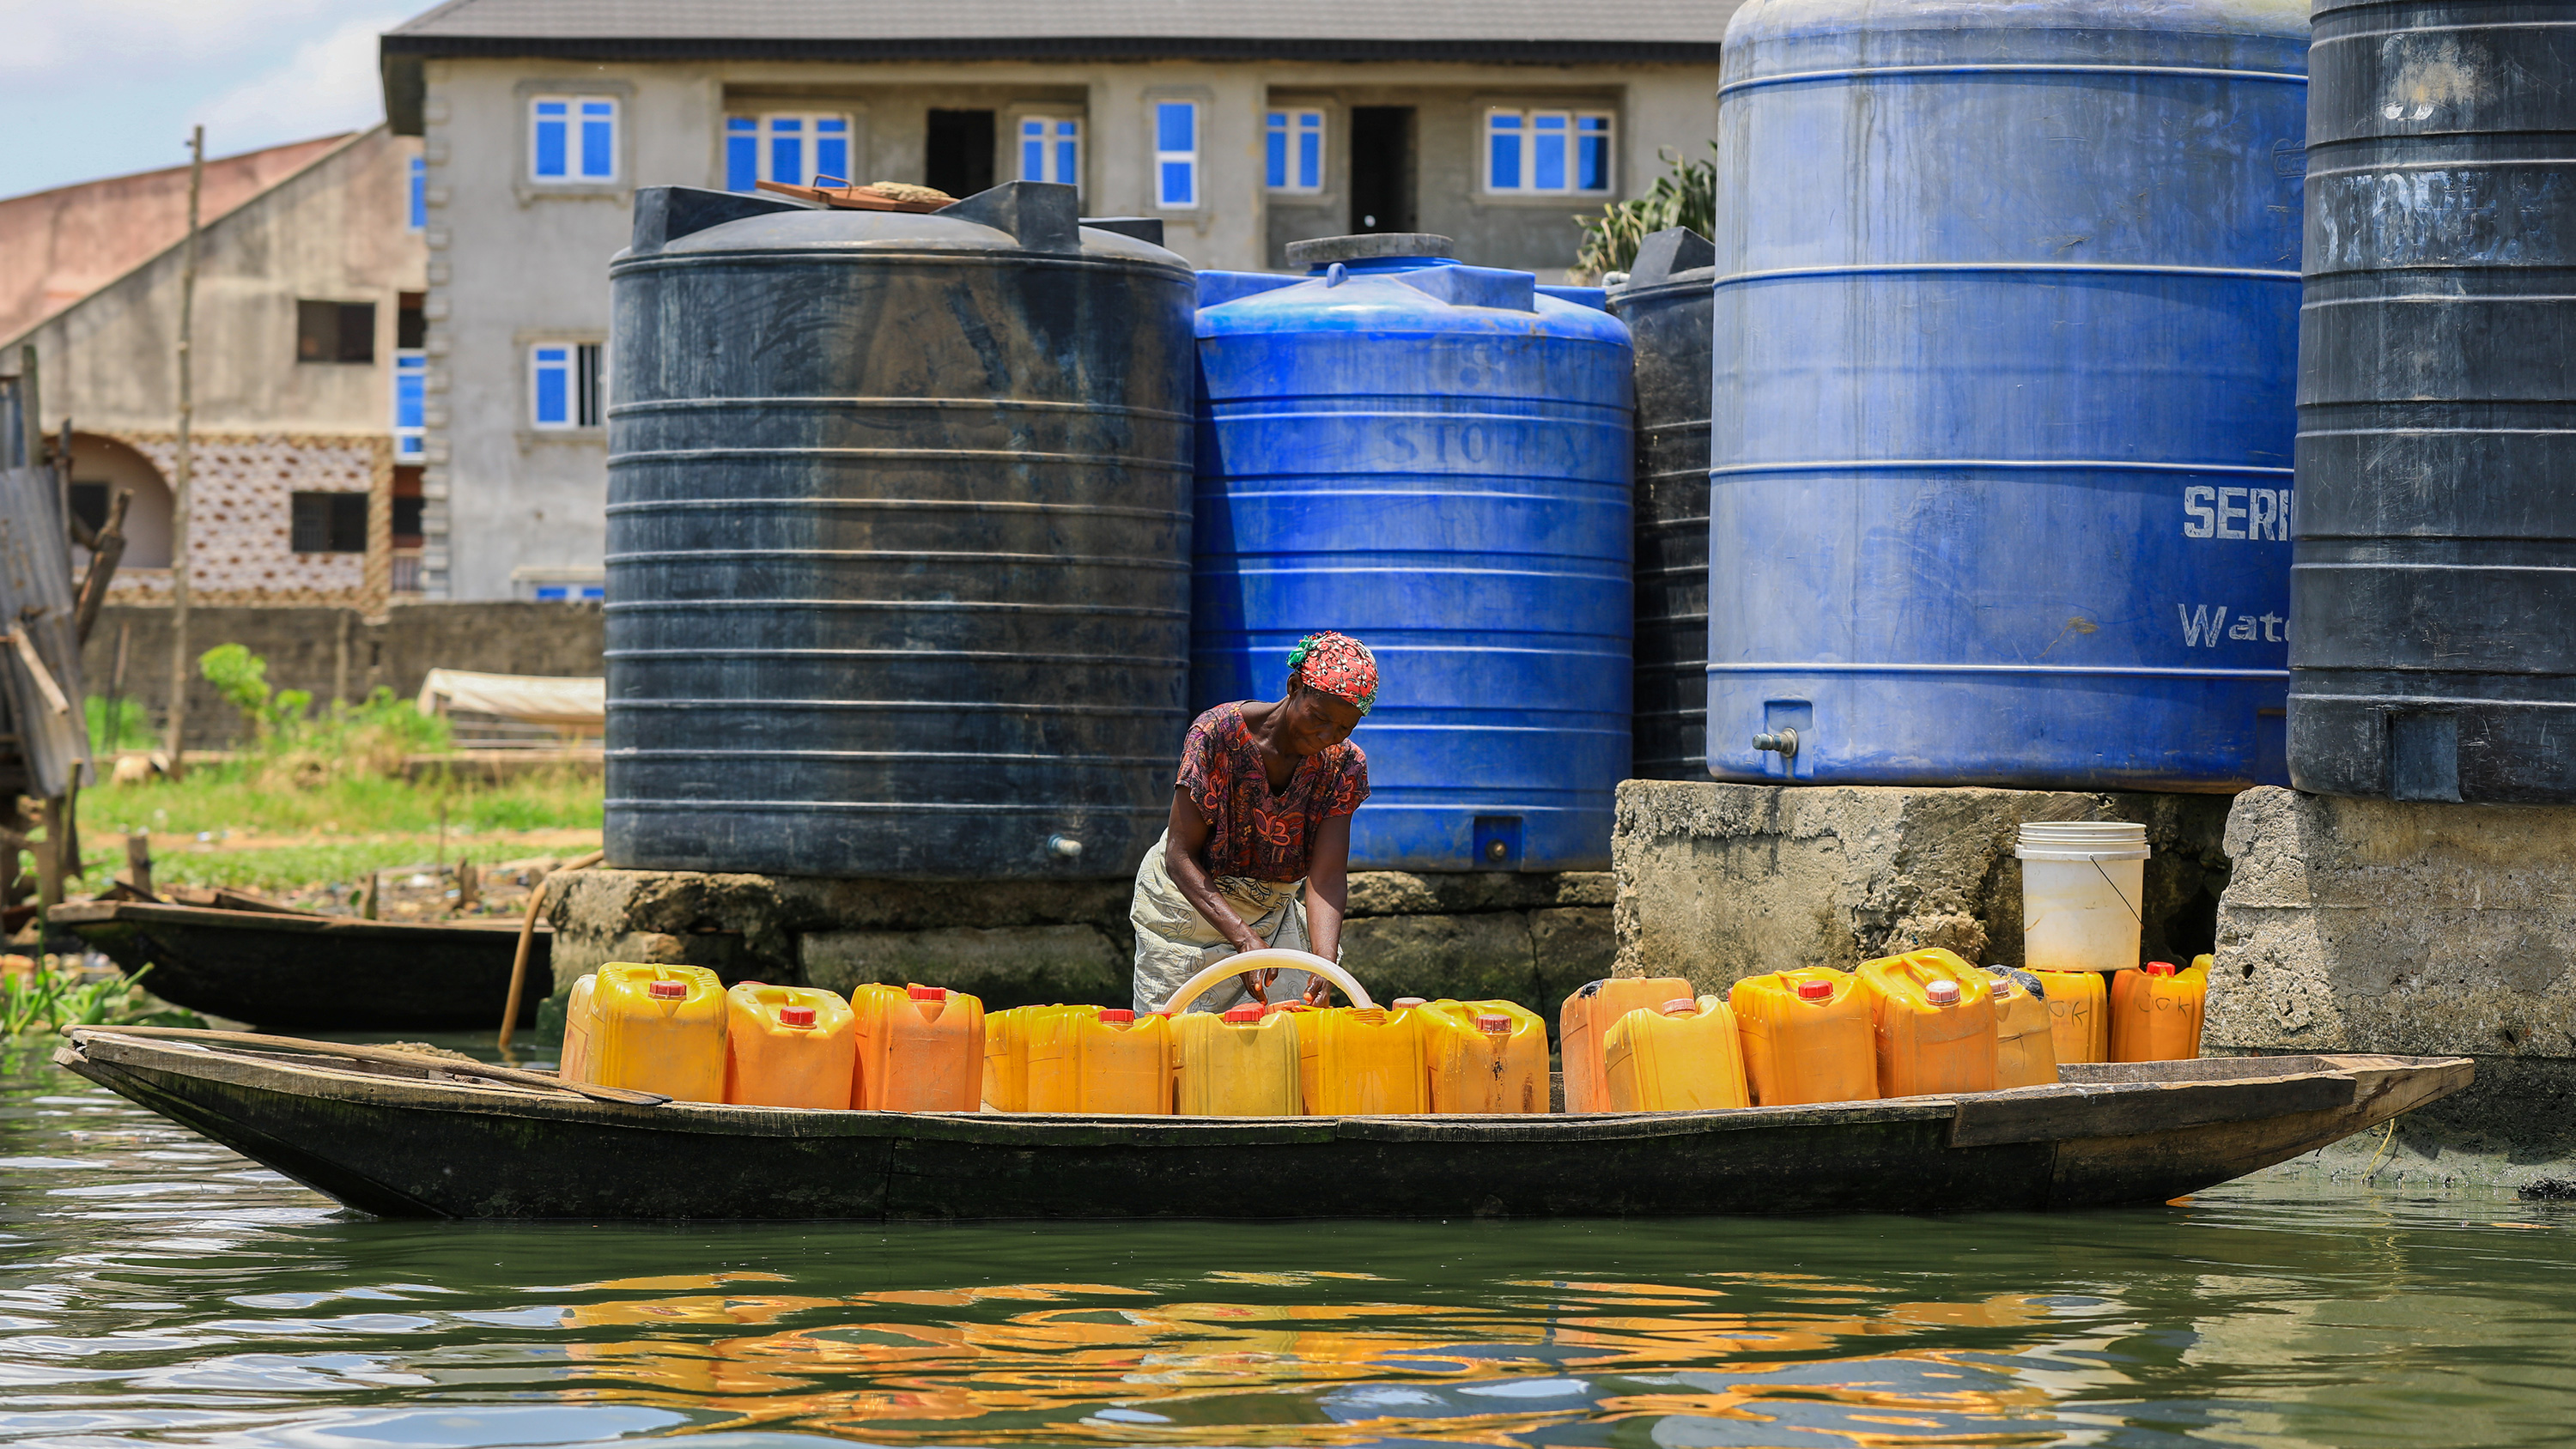 Picture shows a woman with a long dugout canoe pulled up to a filling station with a number of towering water tanks. She is filling a row of yellow jerrycans lined up inside the canoe.